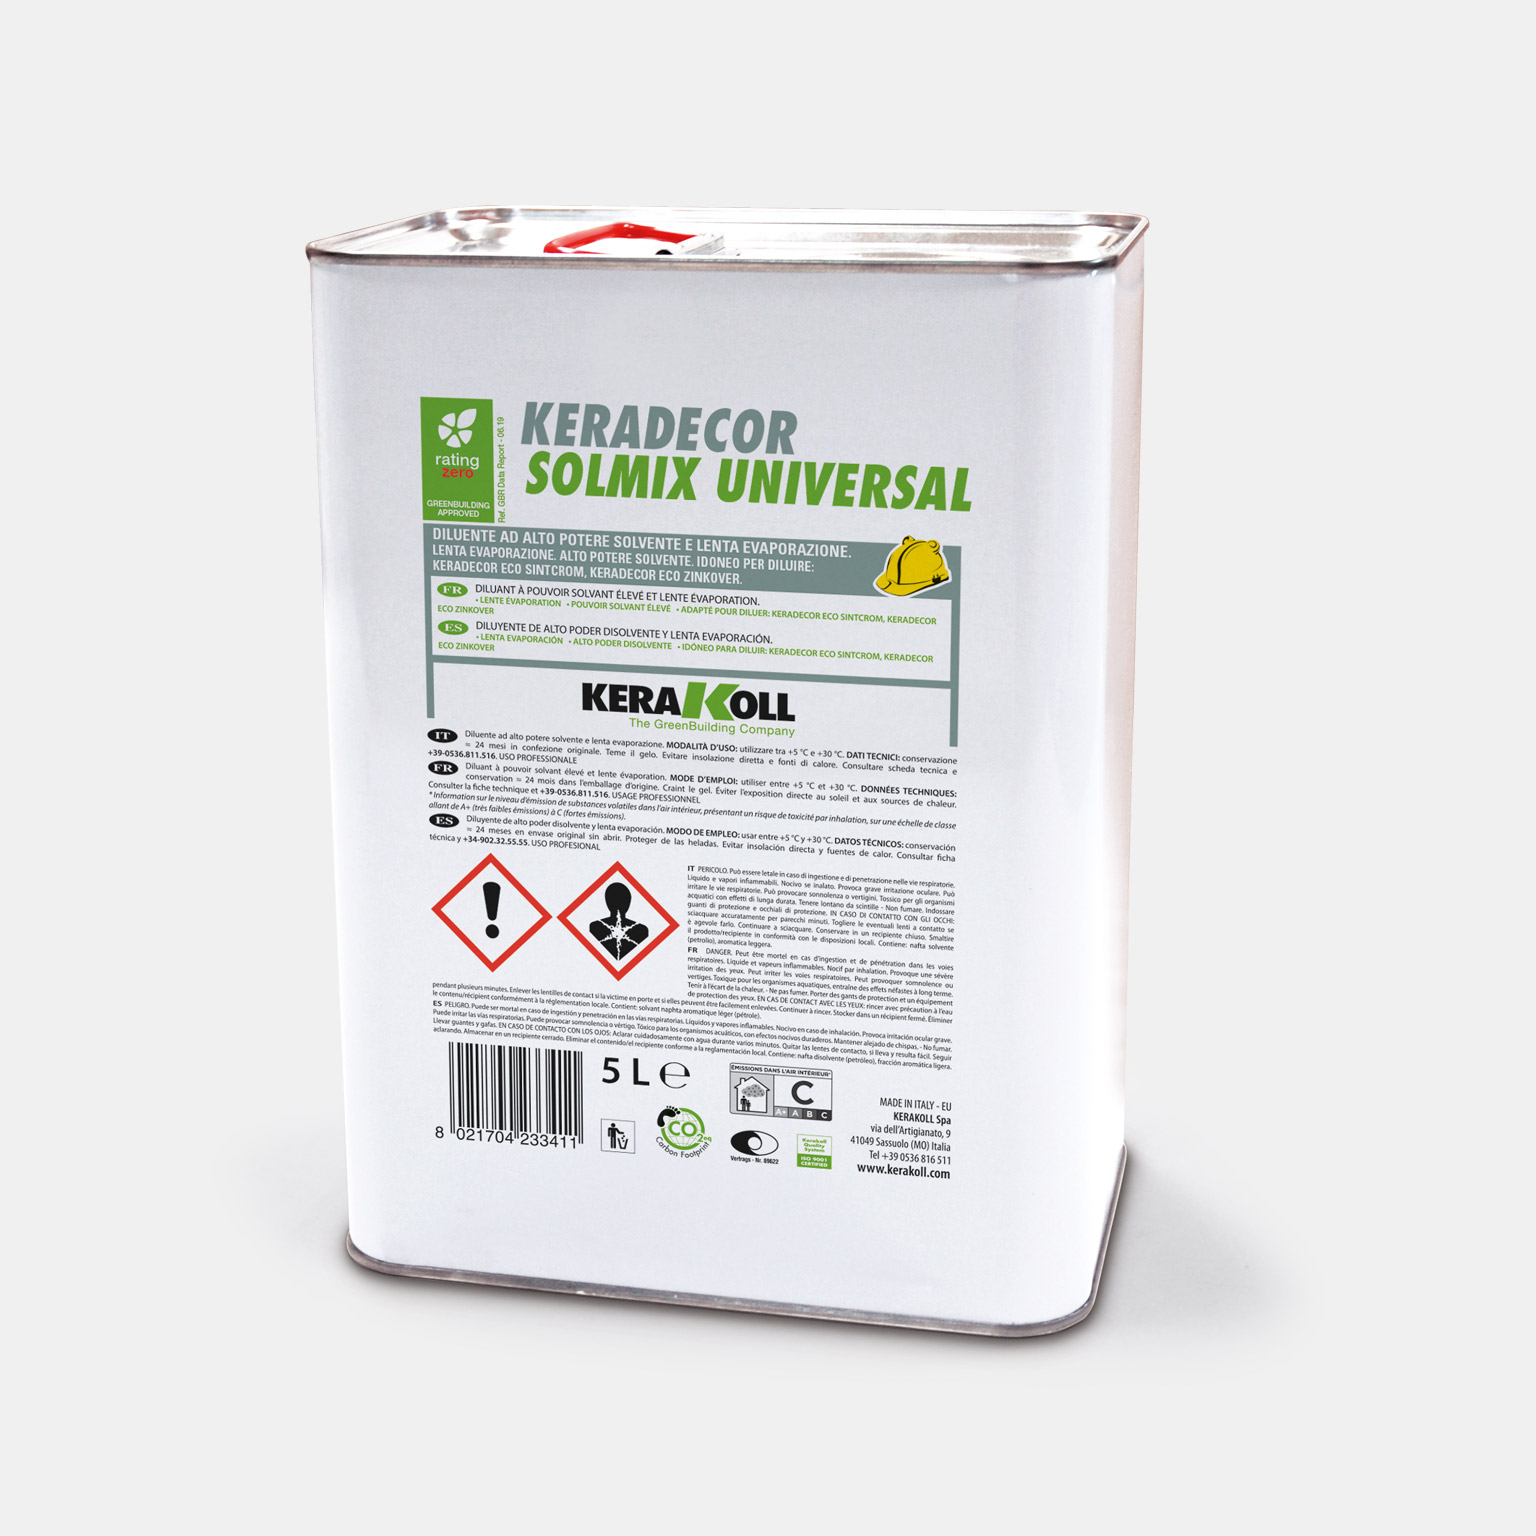 Keradecor Solmix Universal - immagine pack